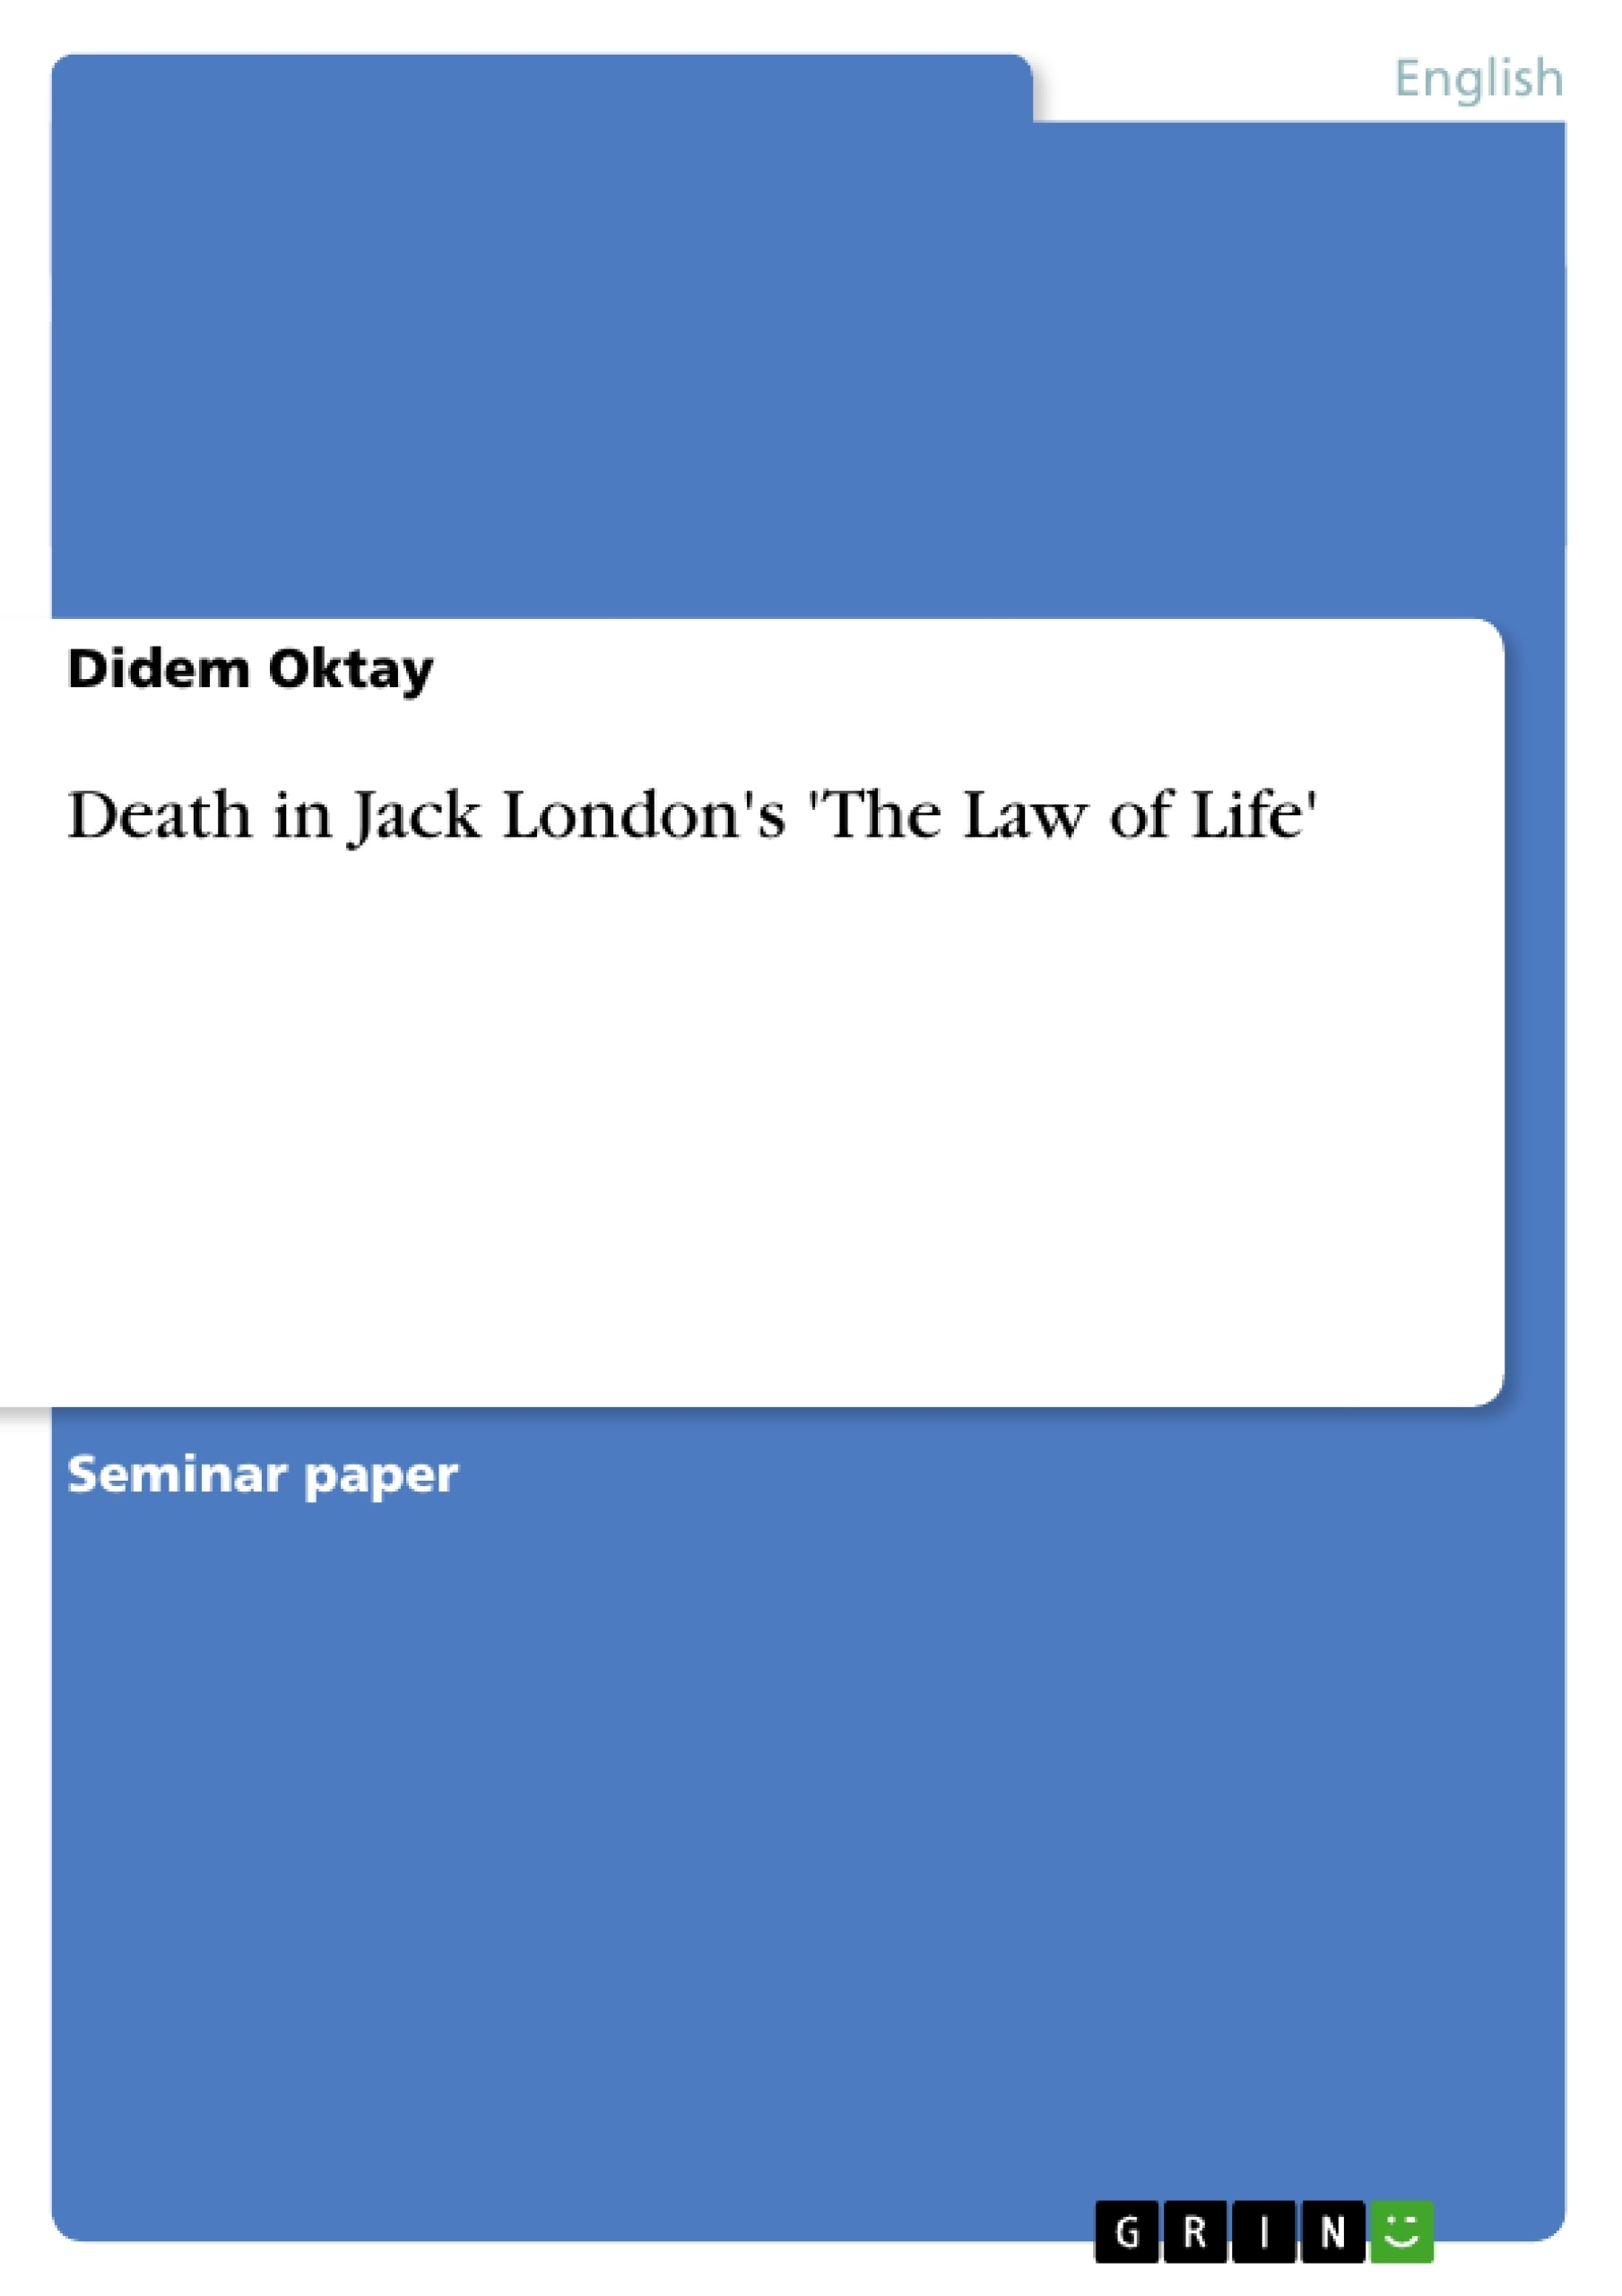 death in jack london s the law of life publish your master s death in jack london s the law of life publish your master s thesis bachelor s thesis essay or term paper